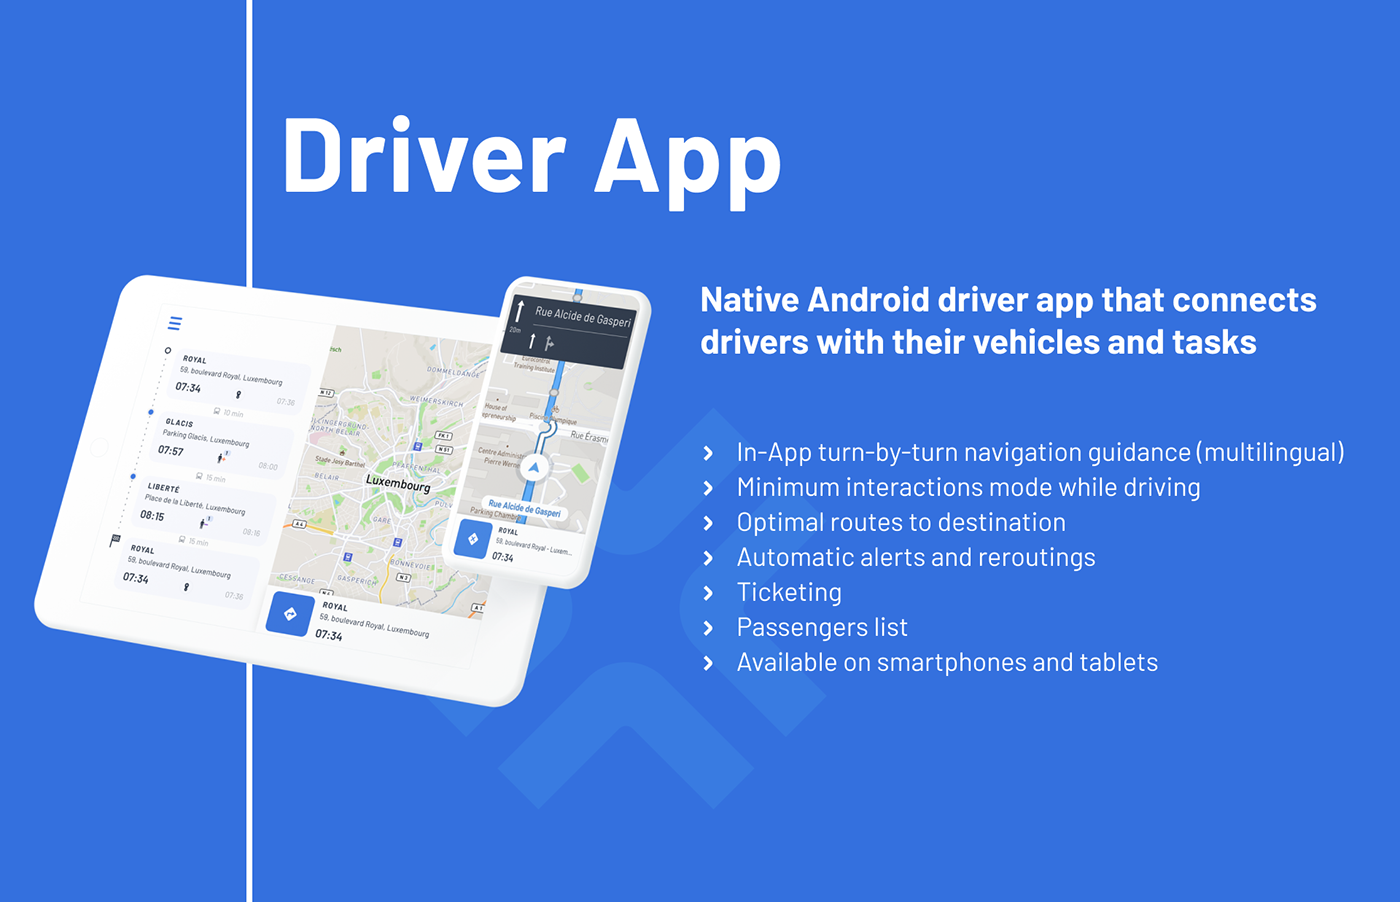 UFT Driver App - Native Andoid Driver App that connects drivers with their vehicles and tasks